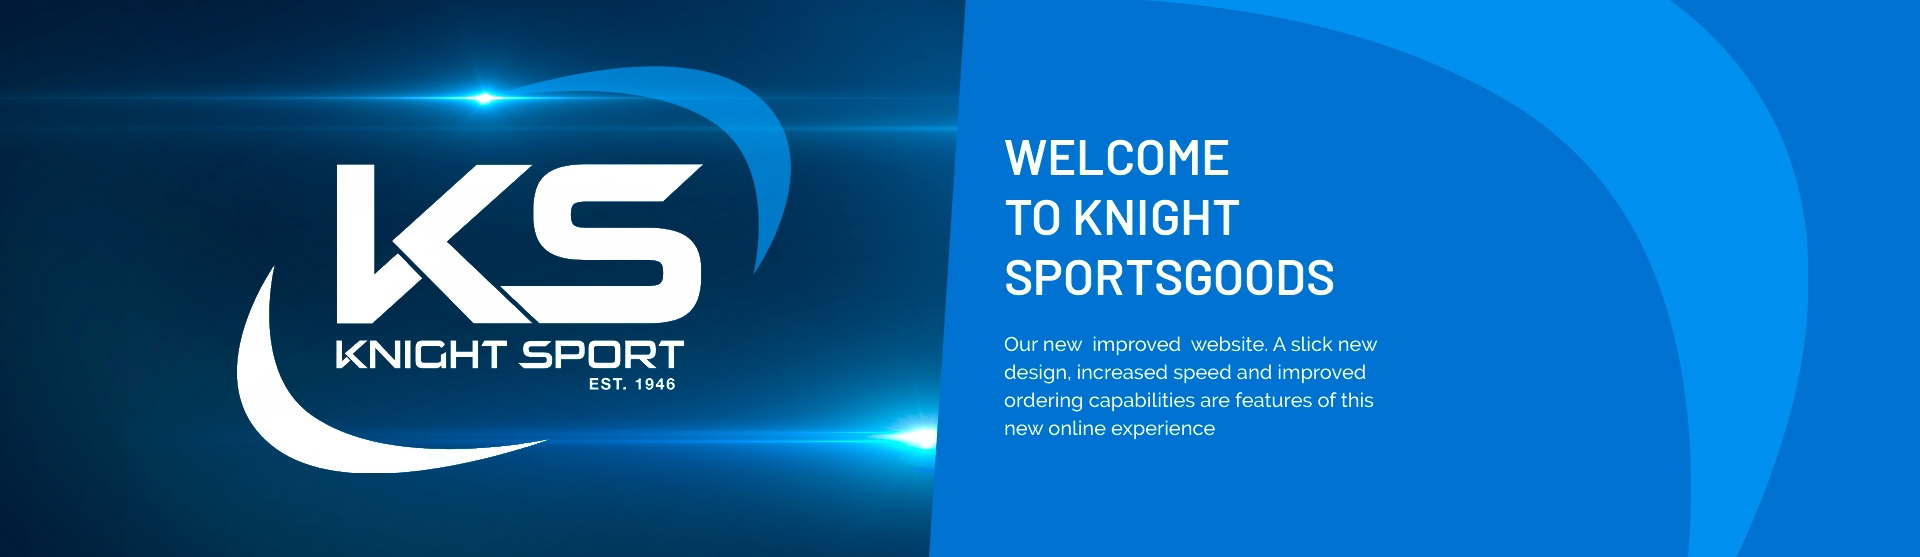 Welcome to Knight Sport